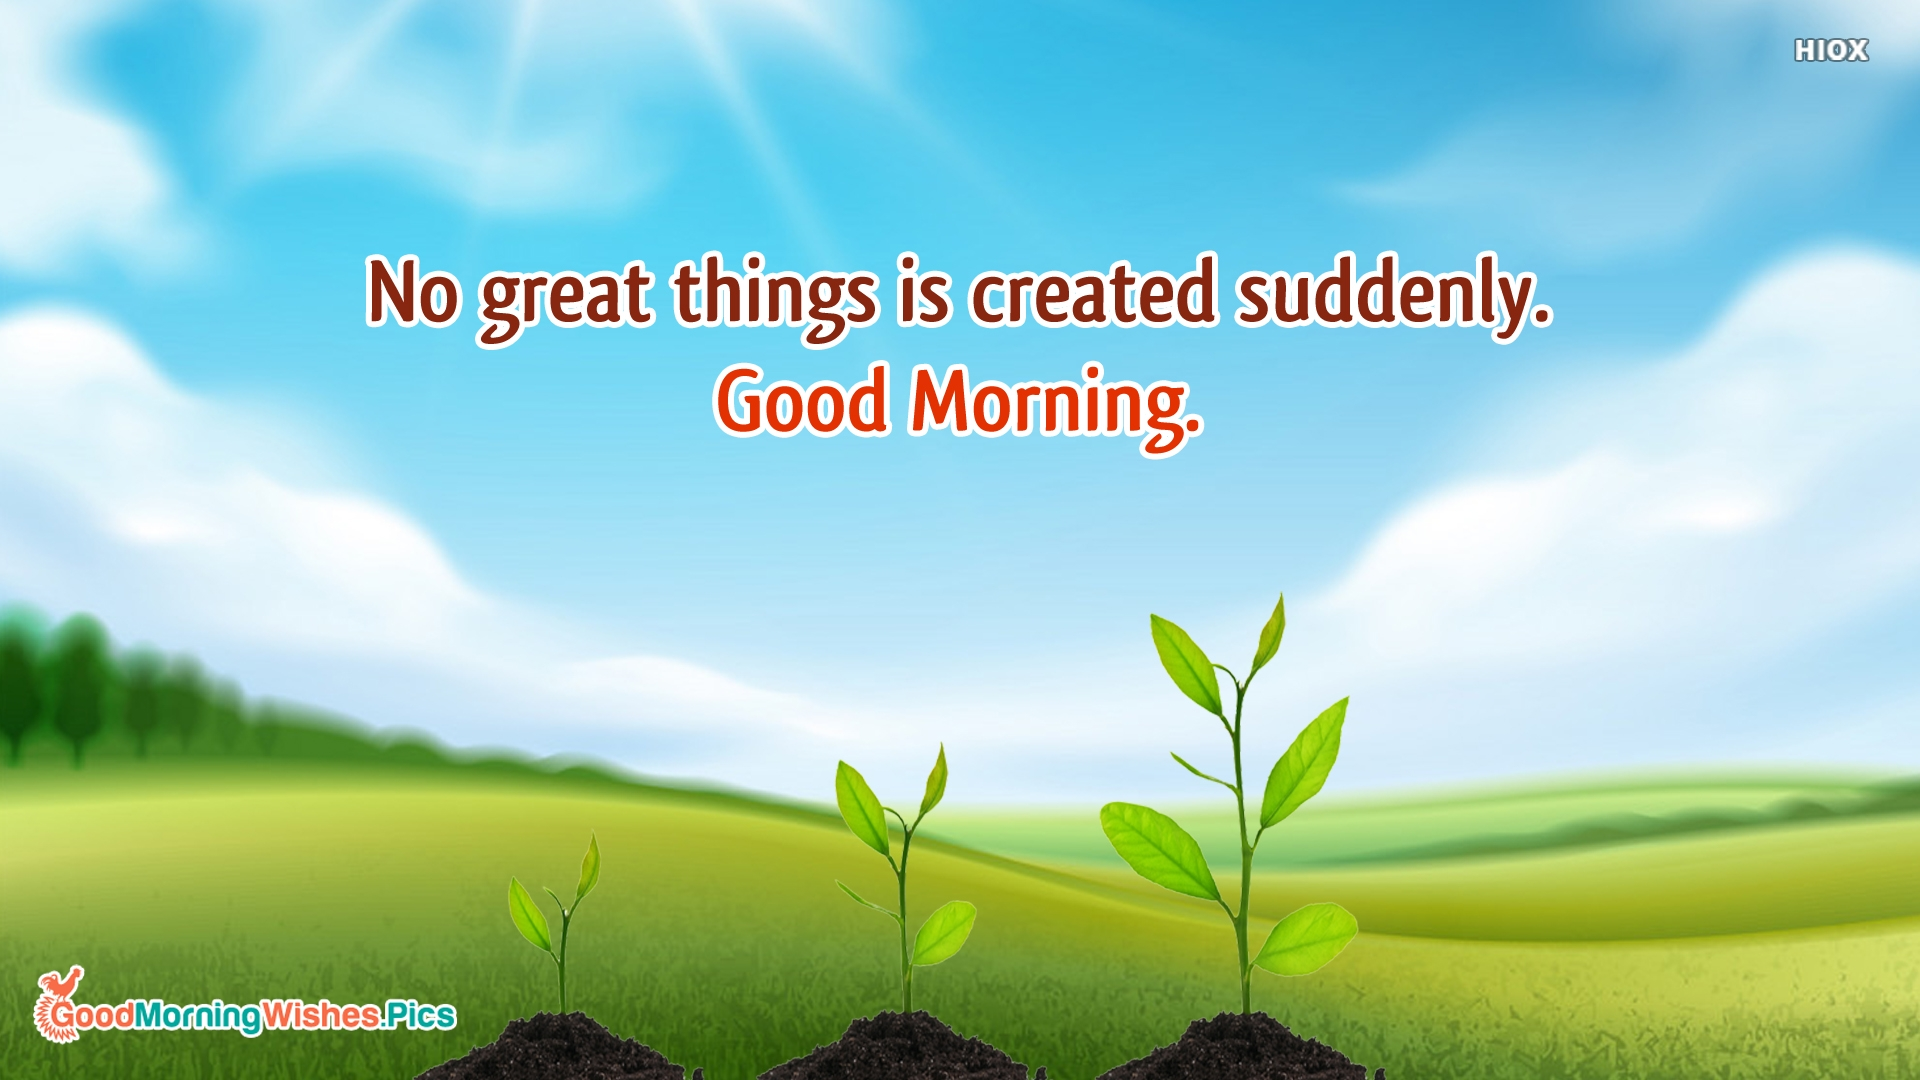 No Great Things is Created Suddenly. Good Morning